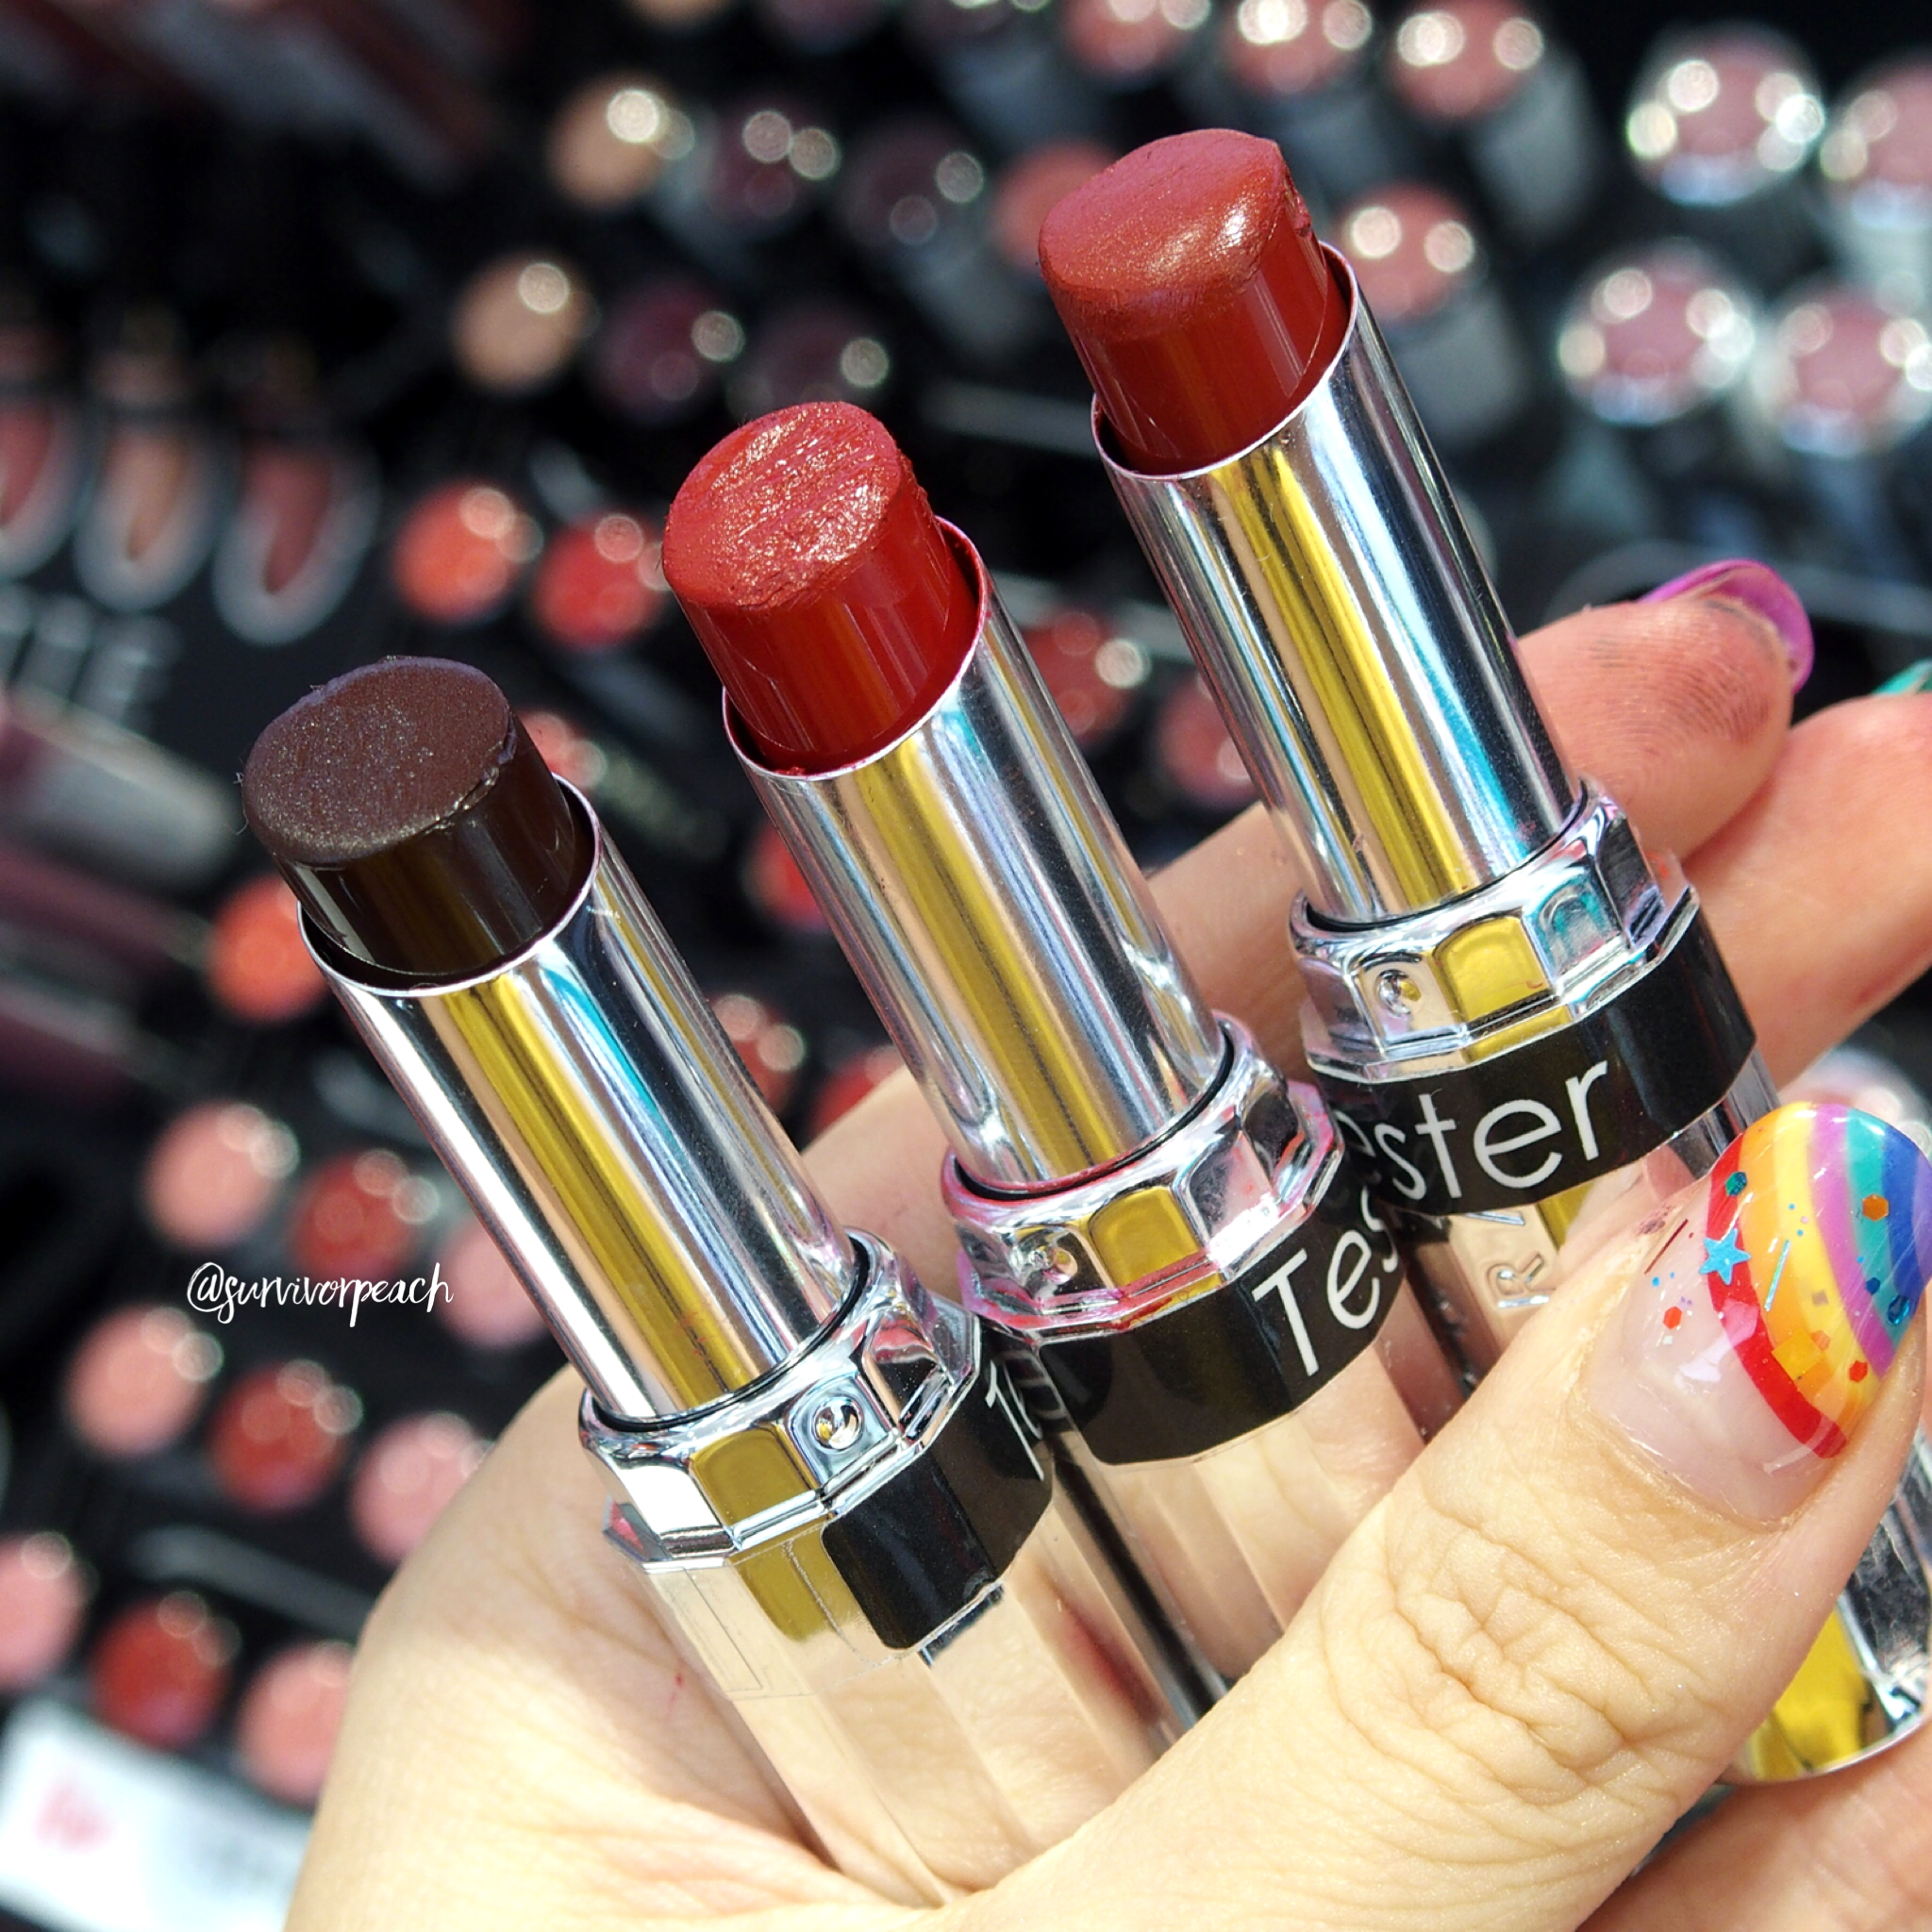 Sephora Collection Lipstick Rouge Lacquer Lipstick - L01 Power Suit, L02 Wicked Smart, L04 Empowered